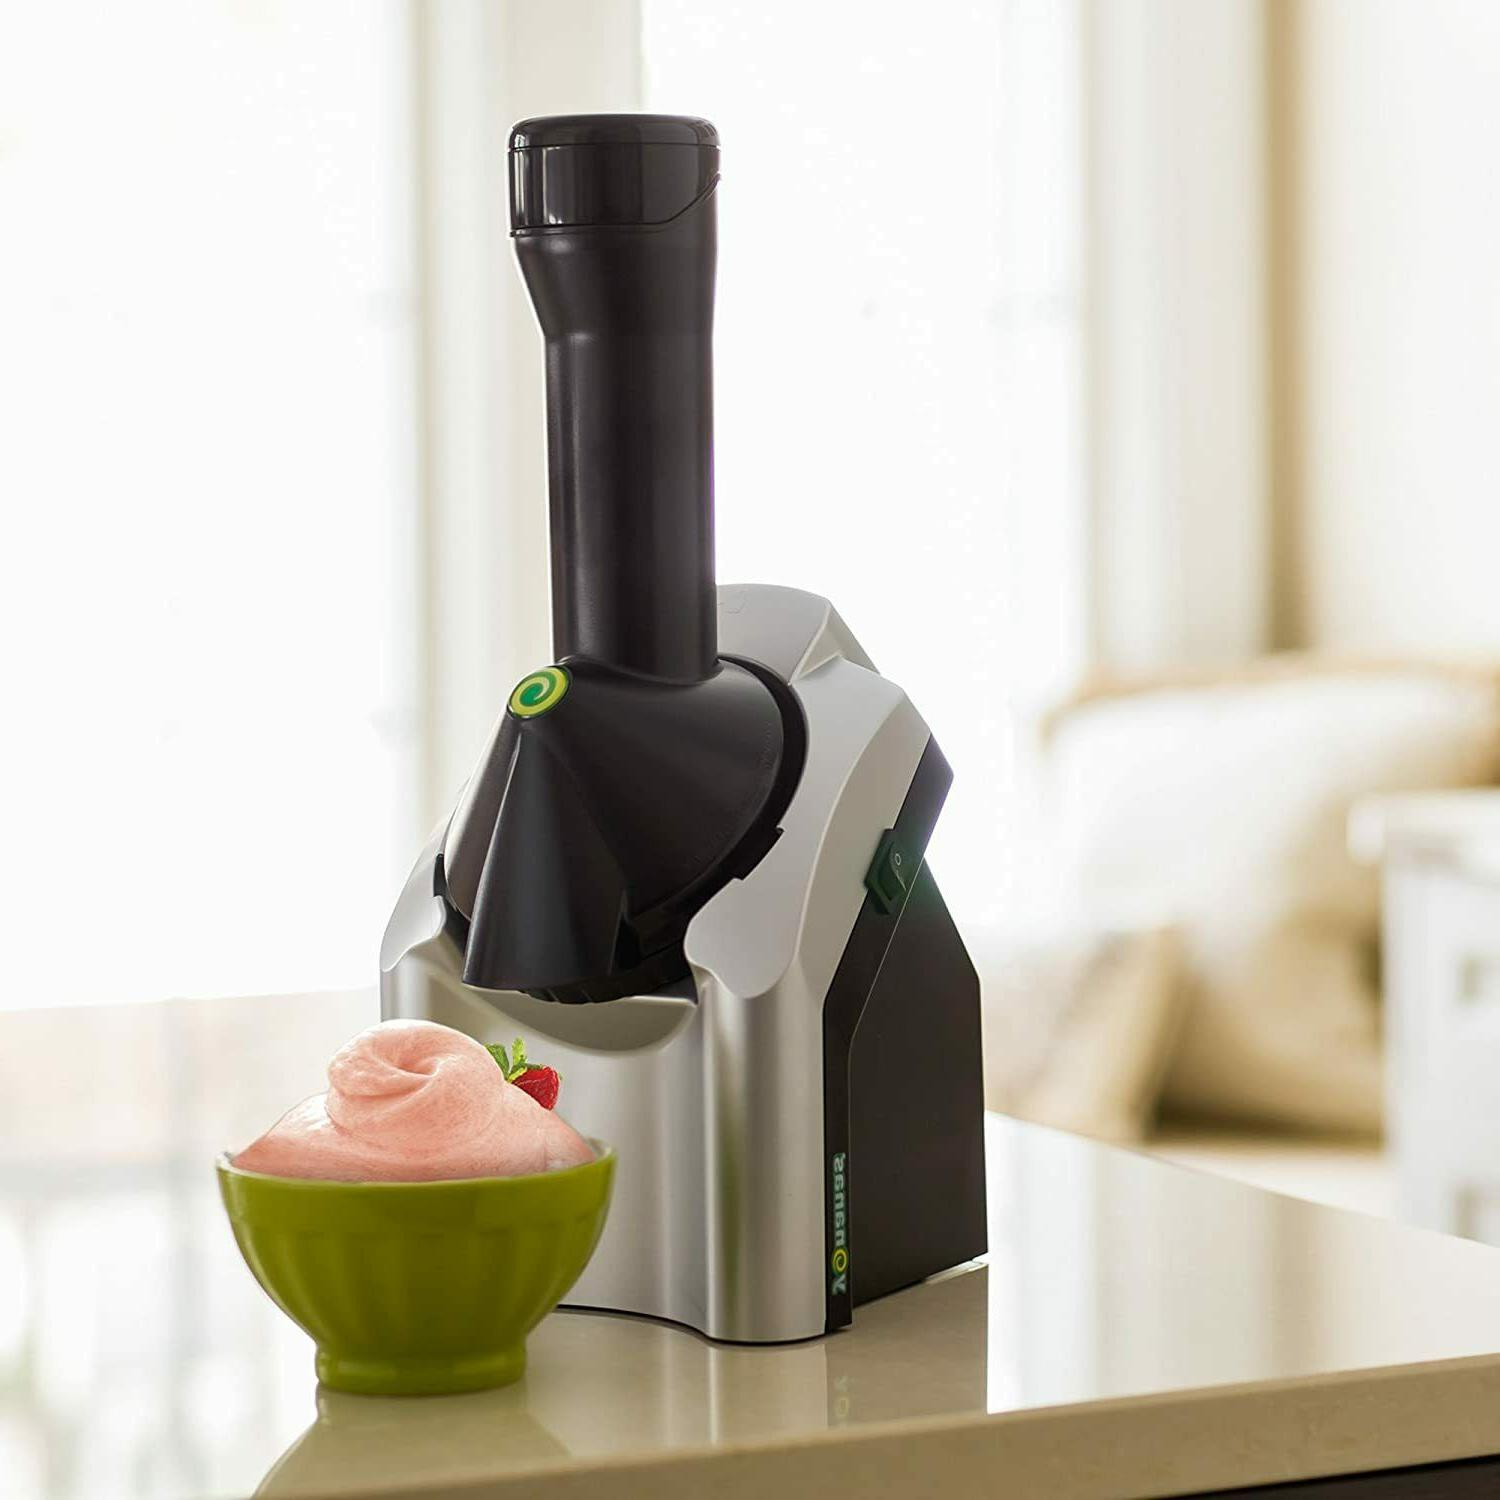 Yonanas Original Maker Creates Fast